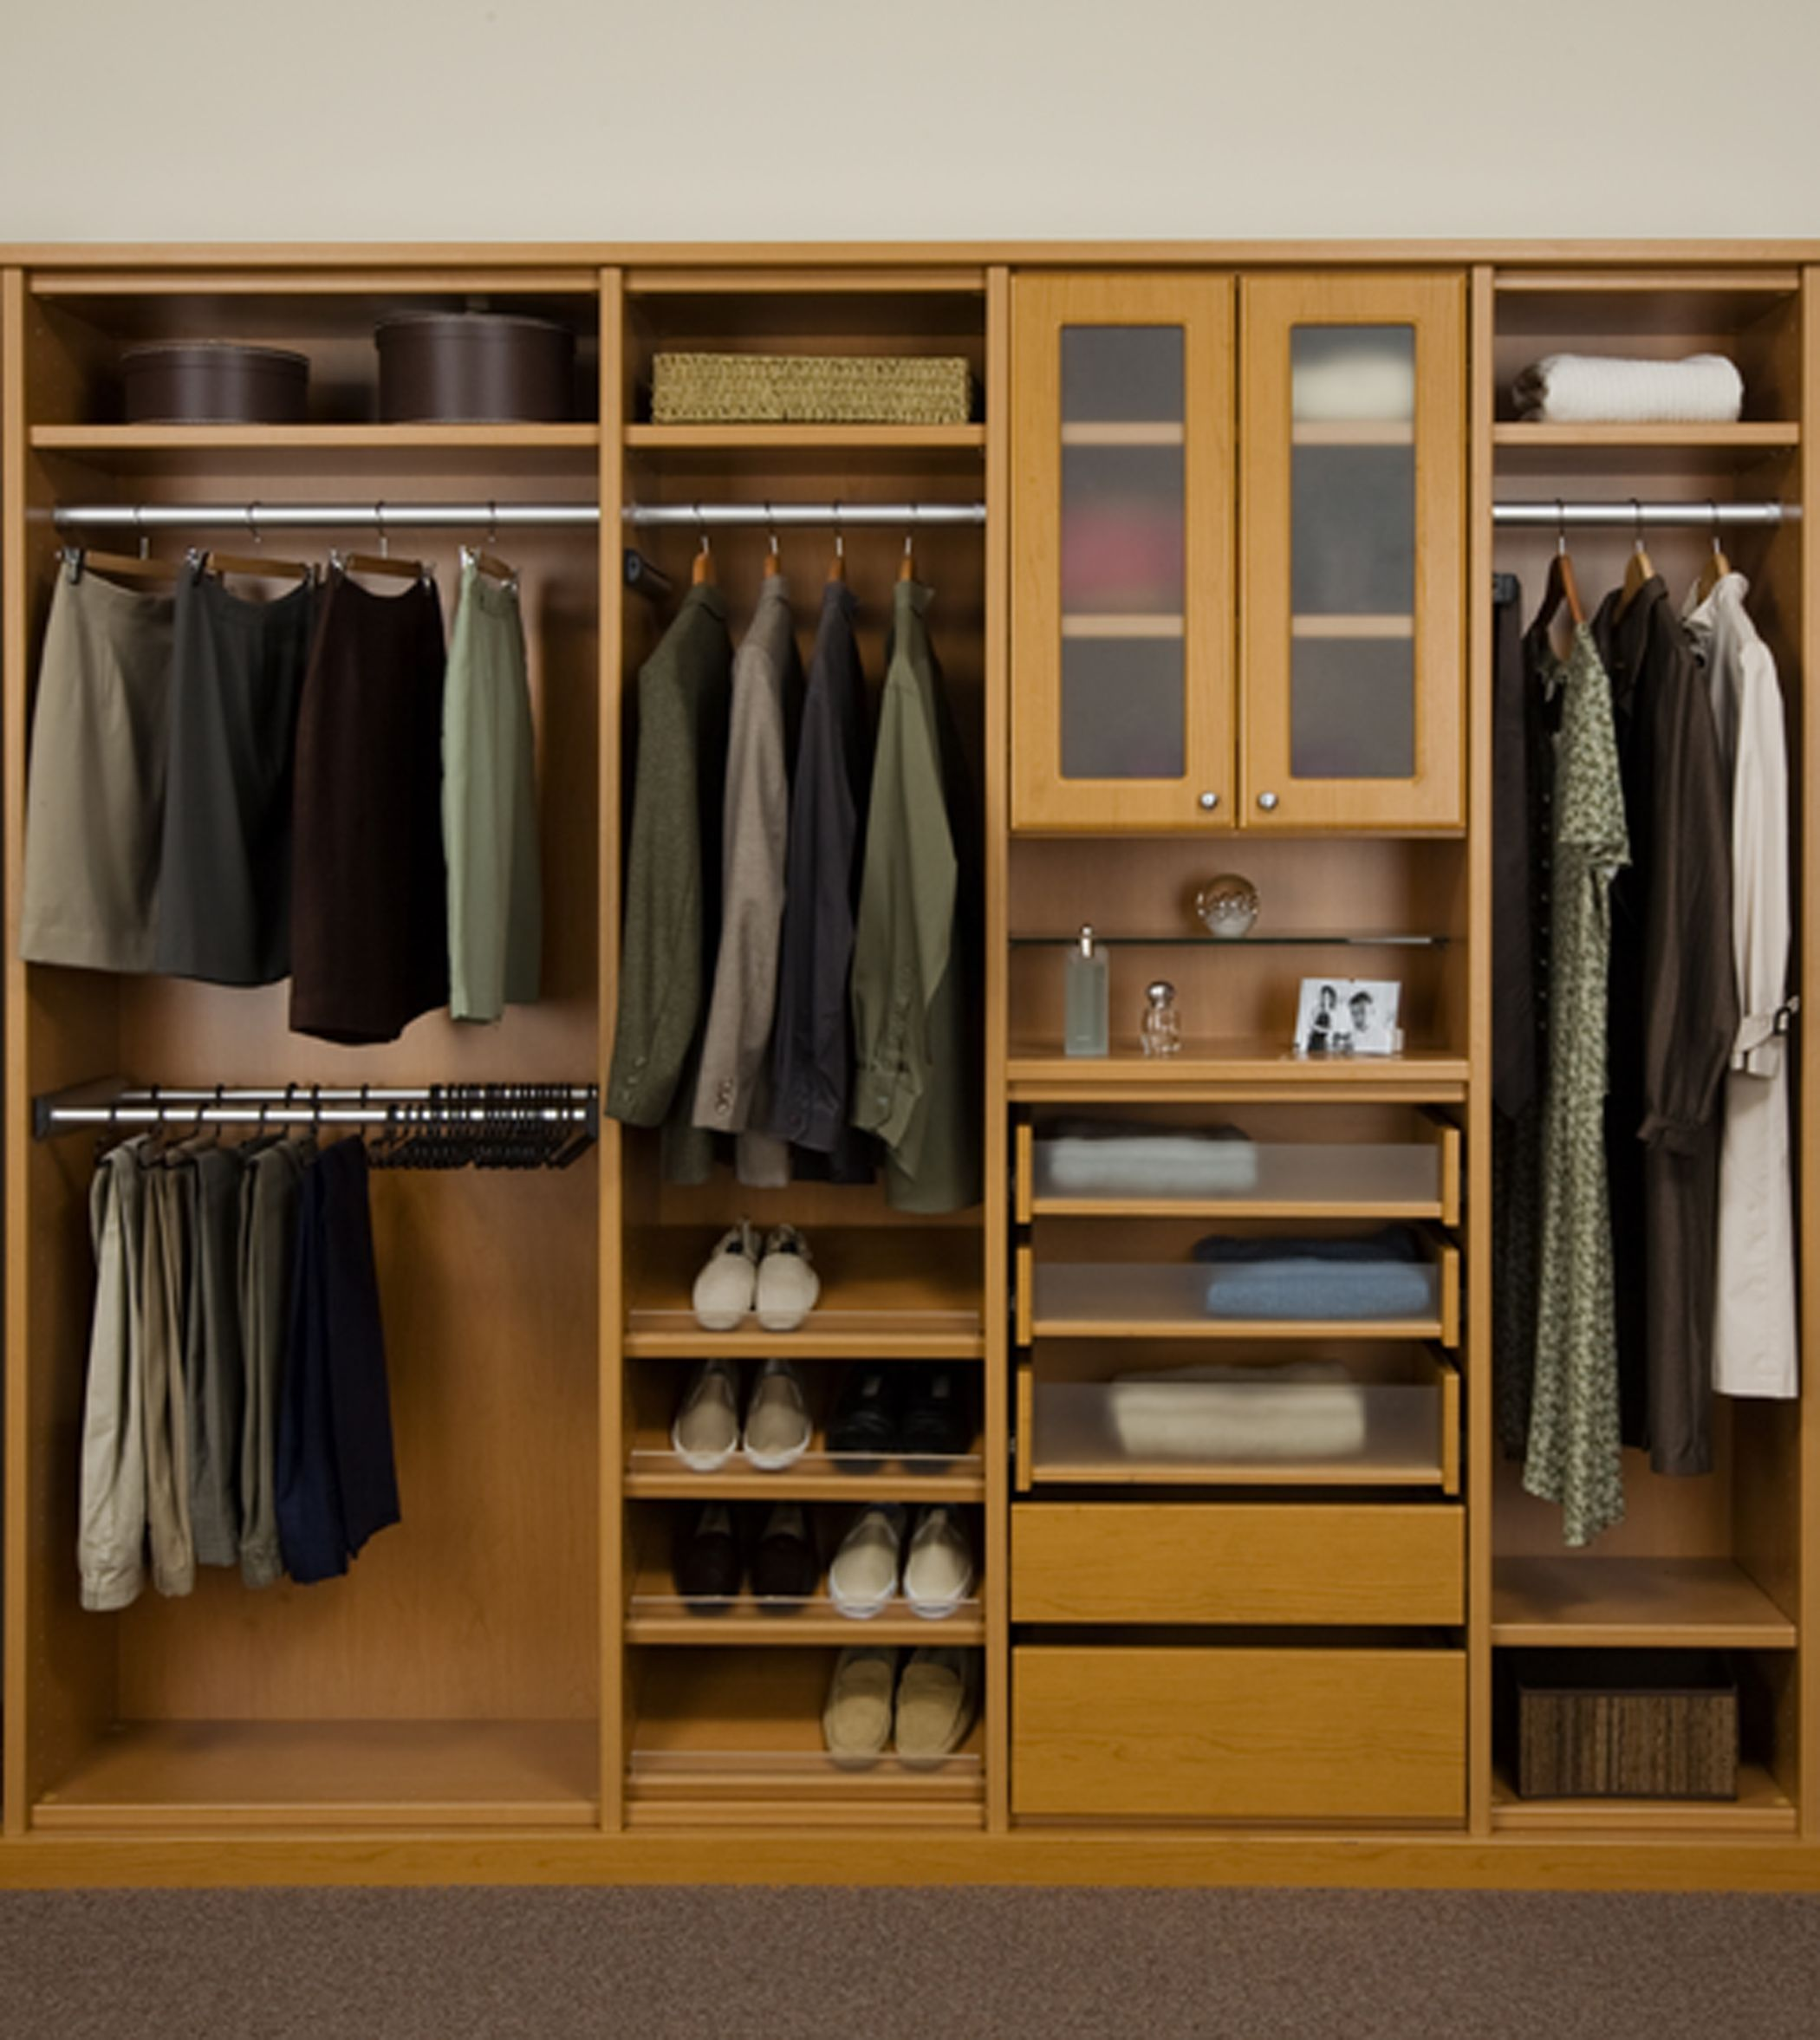 pictures of closets designs closet design lowes closet design ideas - Wall Closet Design